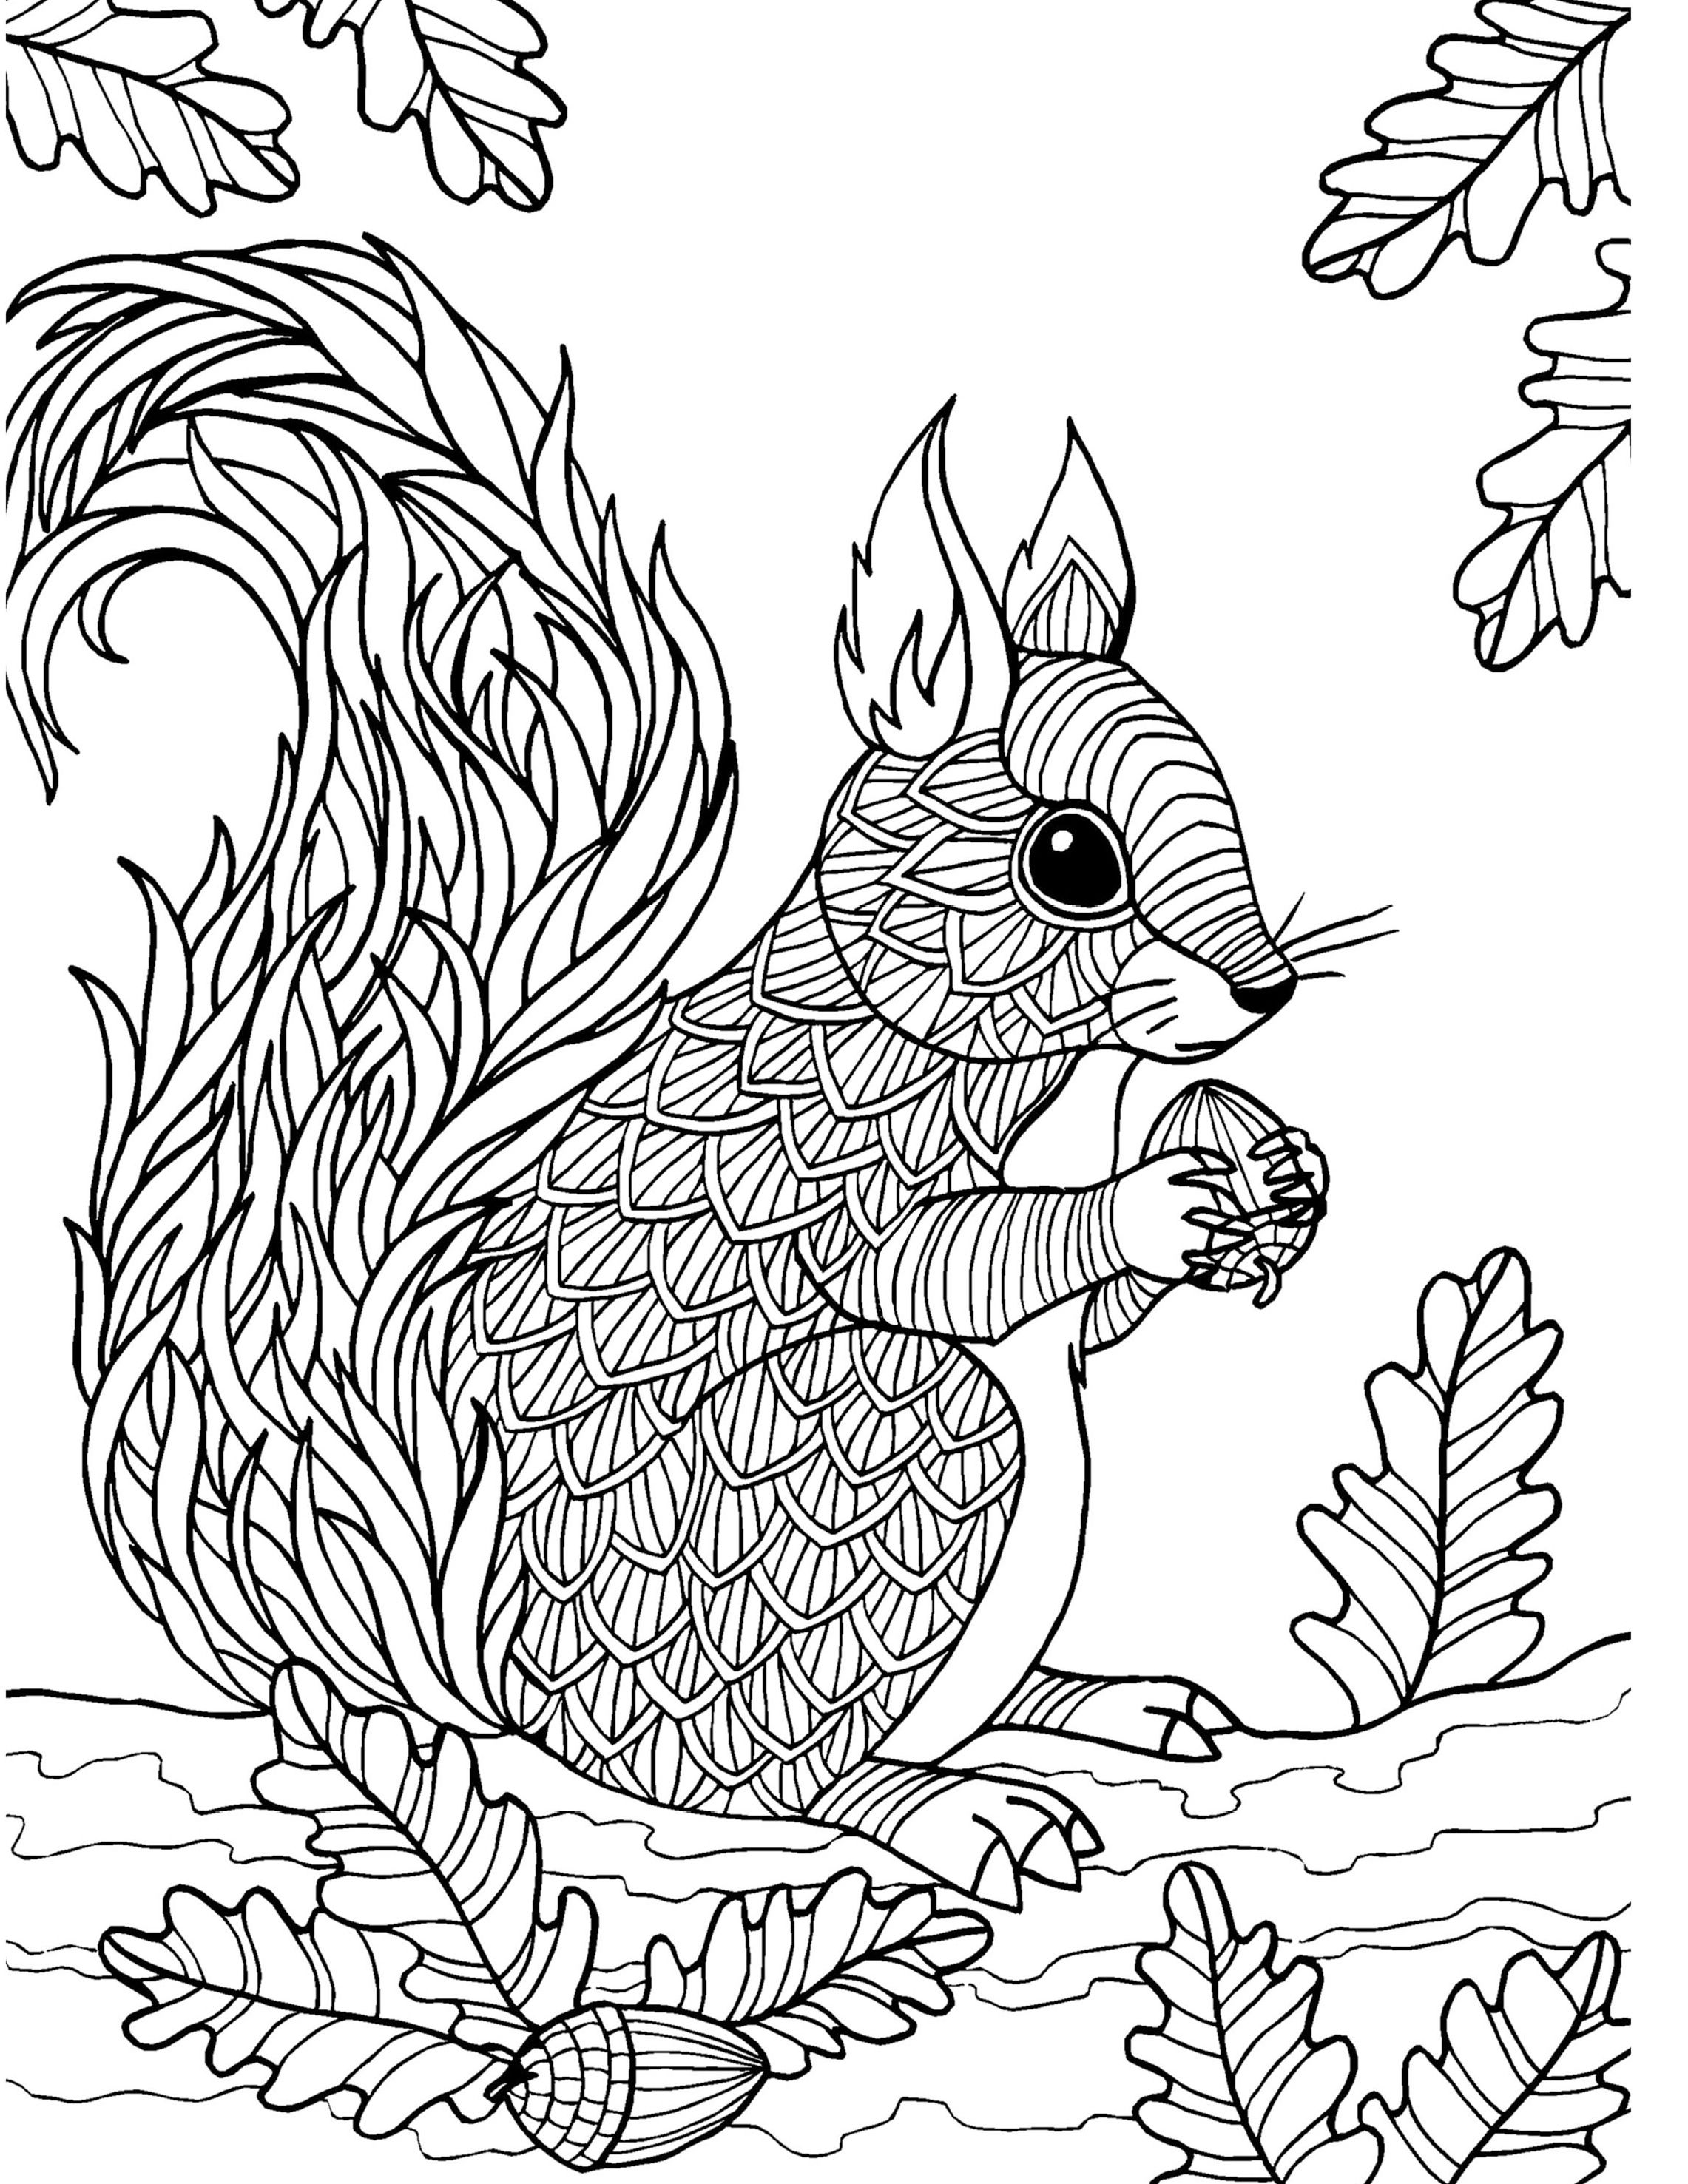 squirrel colouring page colouring in sheets